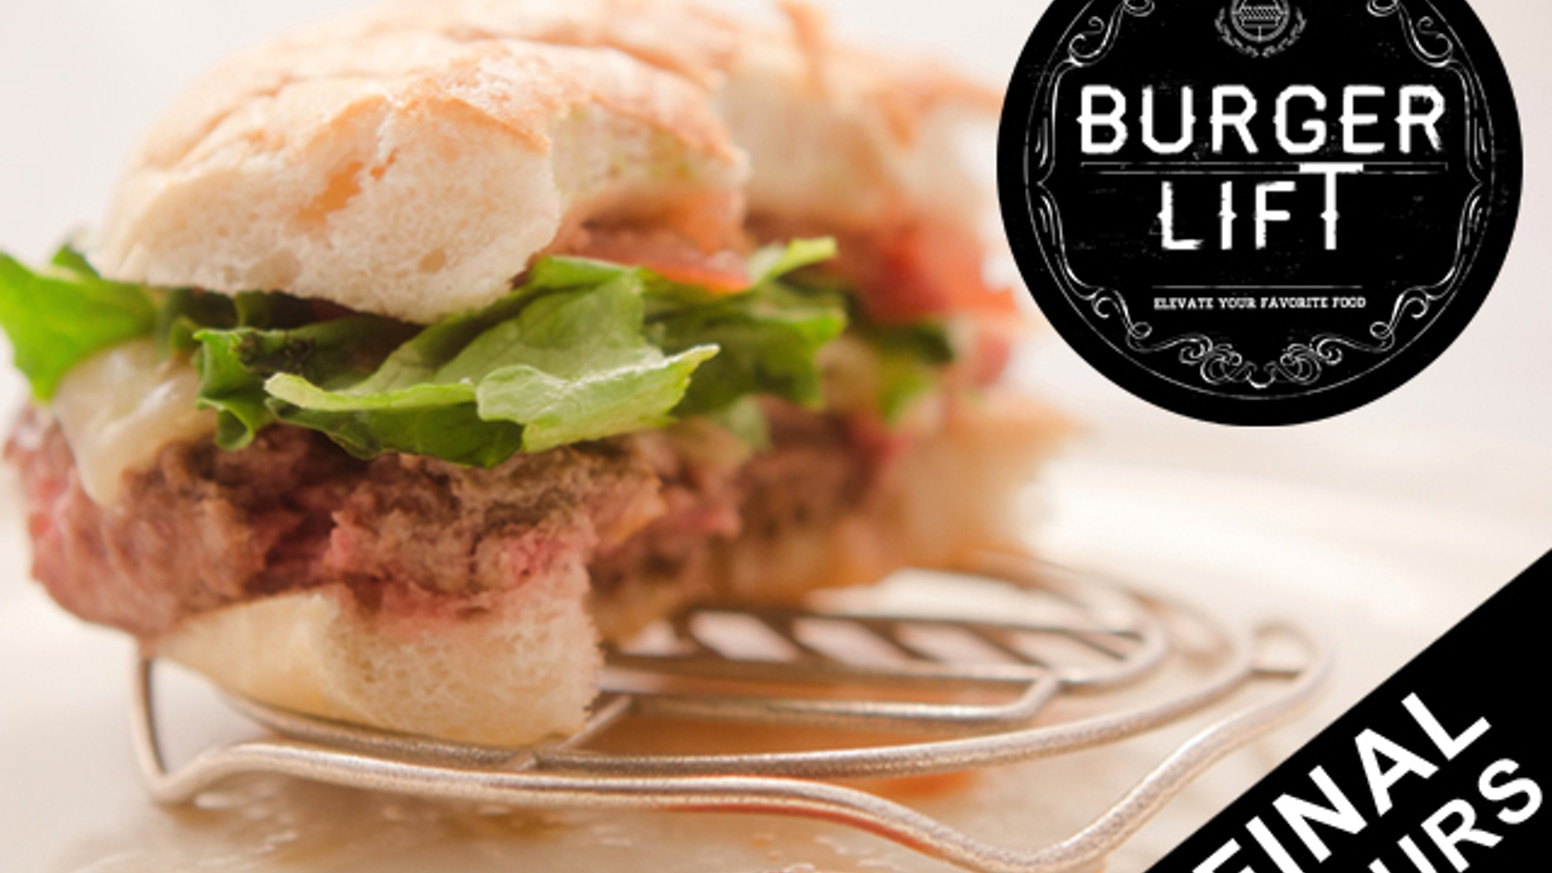 Soggy buns got you down?  Try the Burger Lift and Elevate Your Favorite Food!